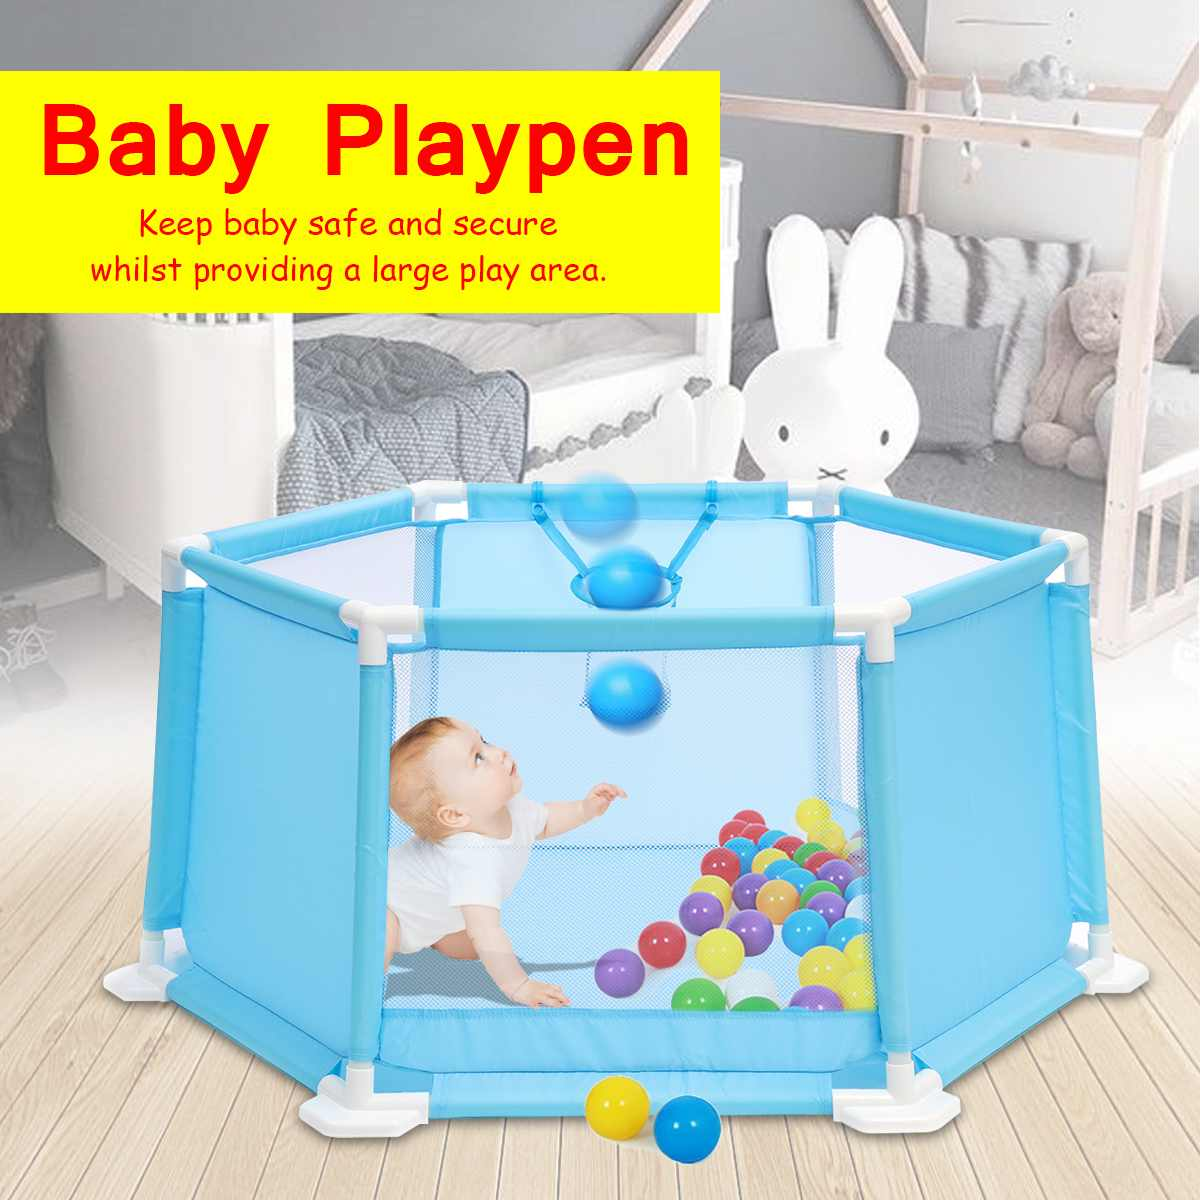 Play Center Yard Fence+50Pcs Balls Baby Playpen Kids 6 Panel Safety Protection 110x49x51cm Integrated Rubberised Feet ConvenientPlay Center Yard Fence+50Pcs Balls Baby Playpen Kids 6 Panel Safety Protection 110x49x51cm Integrated Rubberised Feet Convenient